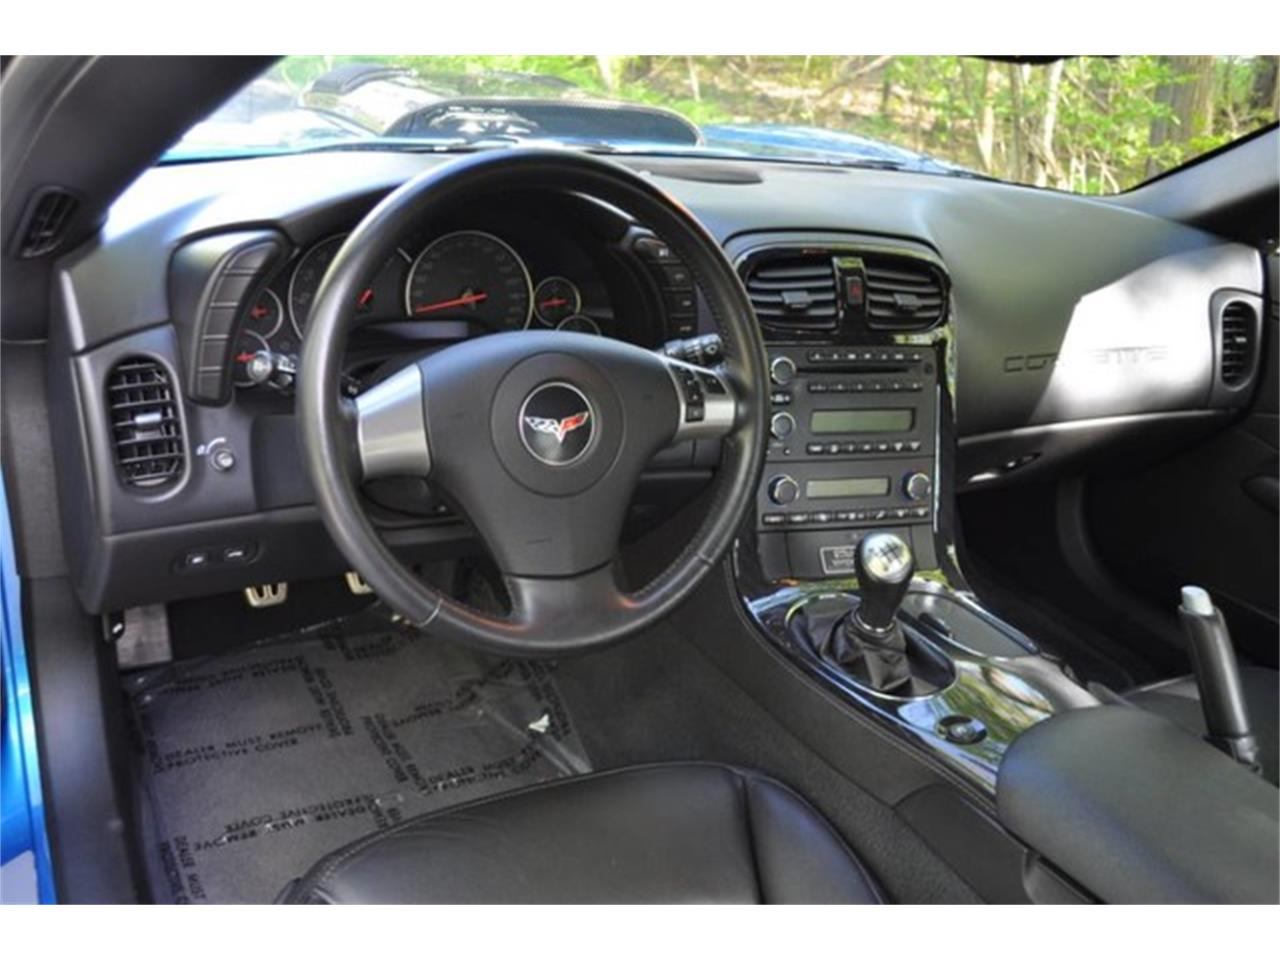 Large Picture of 2011 Chevrolet Corvette - $49,999.00 Offered by Prestige Motor Car Co. - Q58H